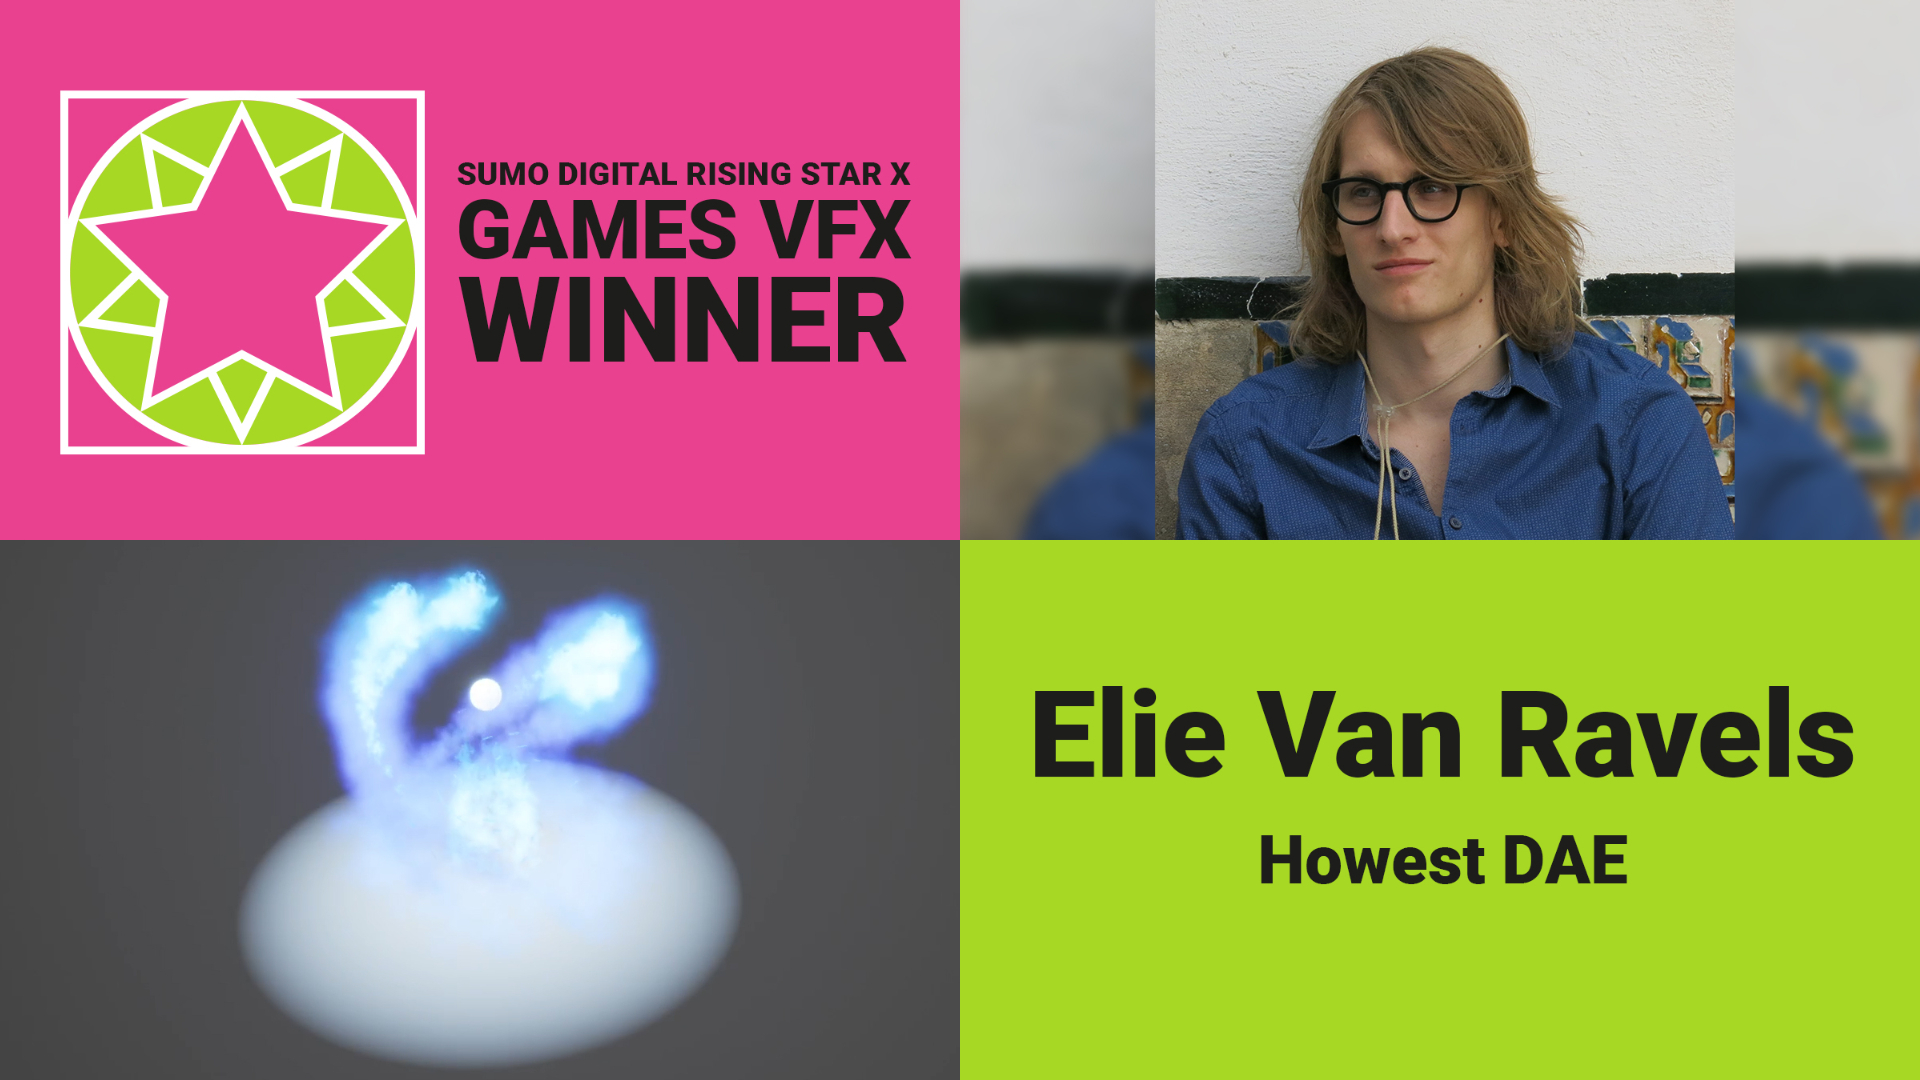 Rising Star games VFX Winner 2020 - Elie Van Ravels